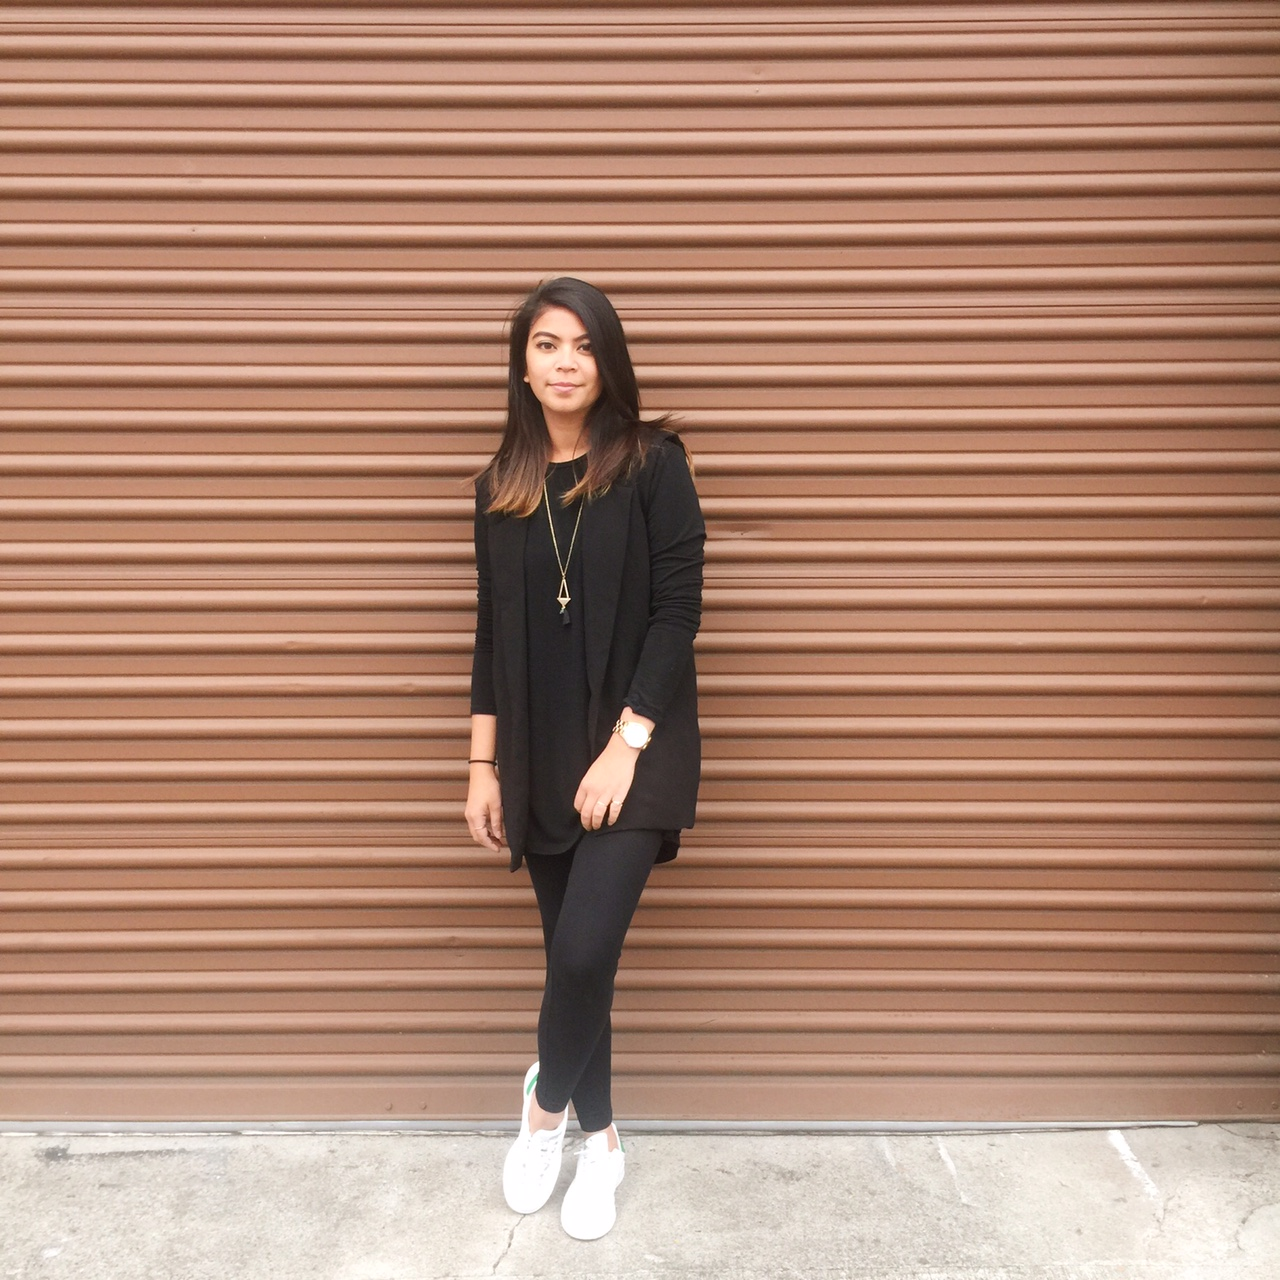 adidas, stan smith, black long sleeve dress, black blazer vest, brandy melville, forever 21,portland blogger, ootd, what i wore, outfit post, blog post, fblogger, pdx fashion blogger, wonder wall wednesday